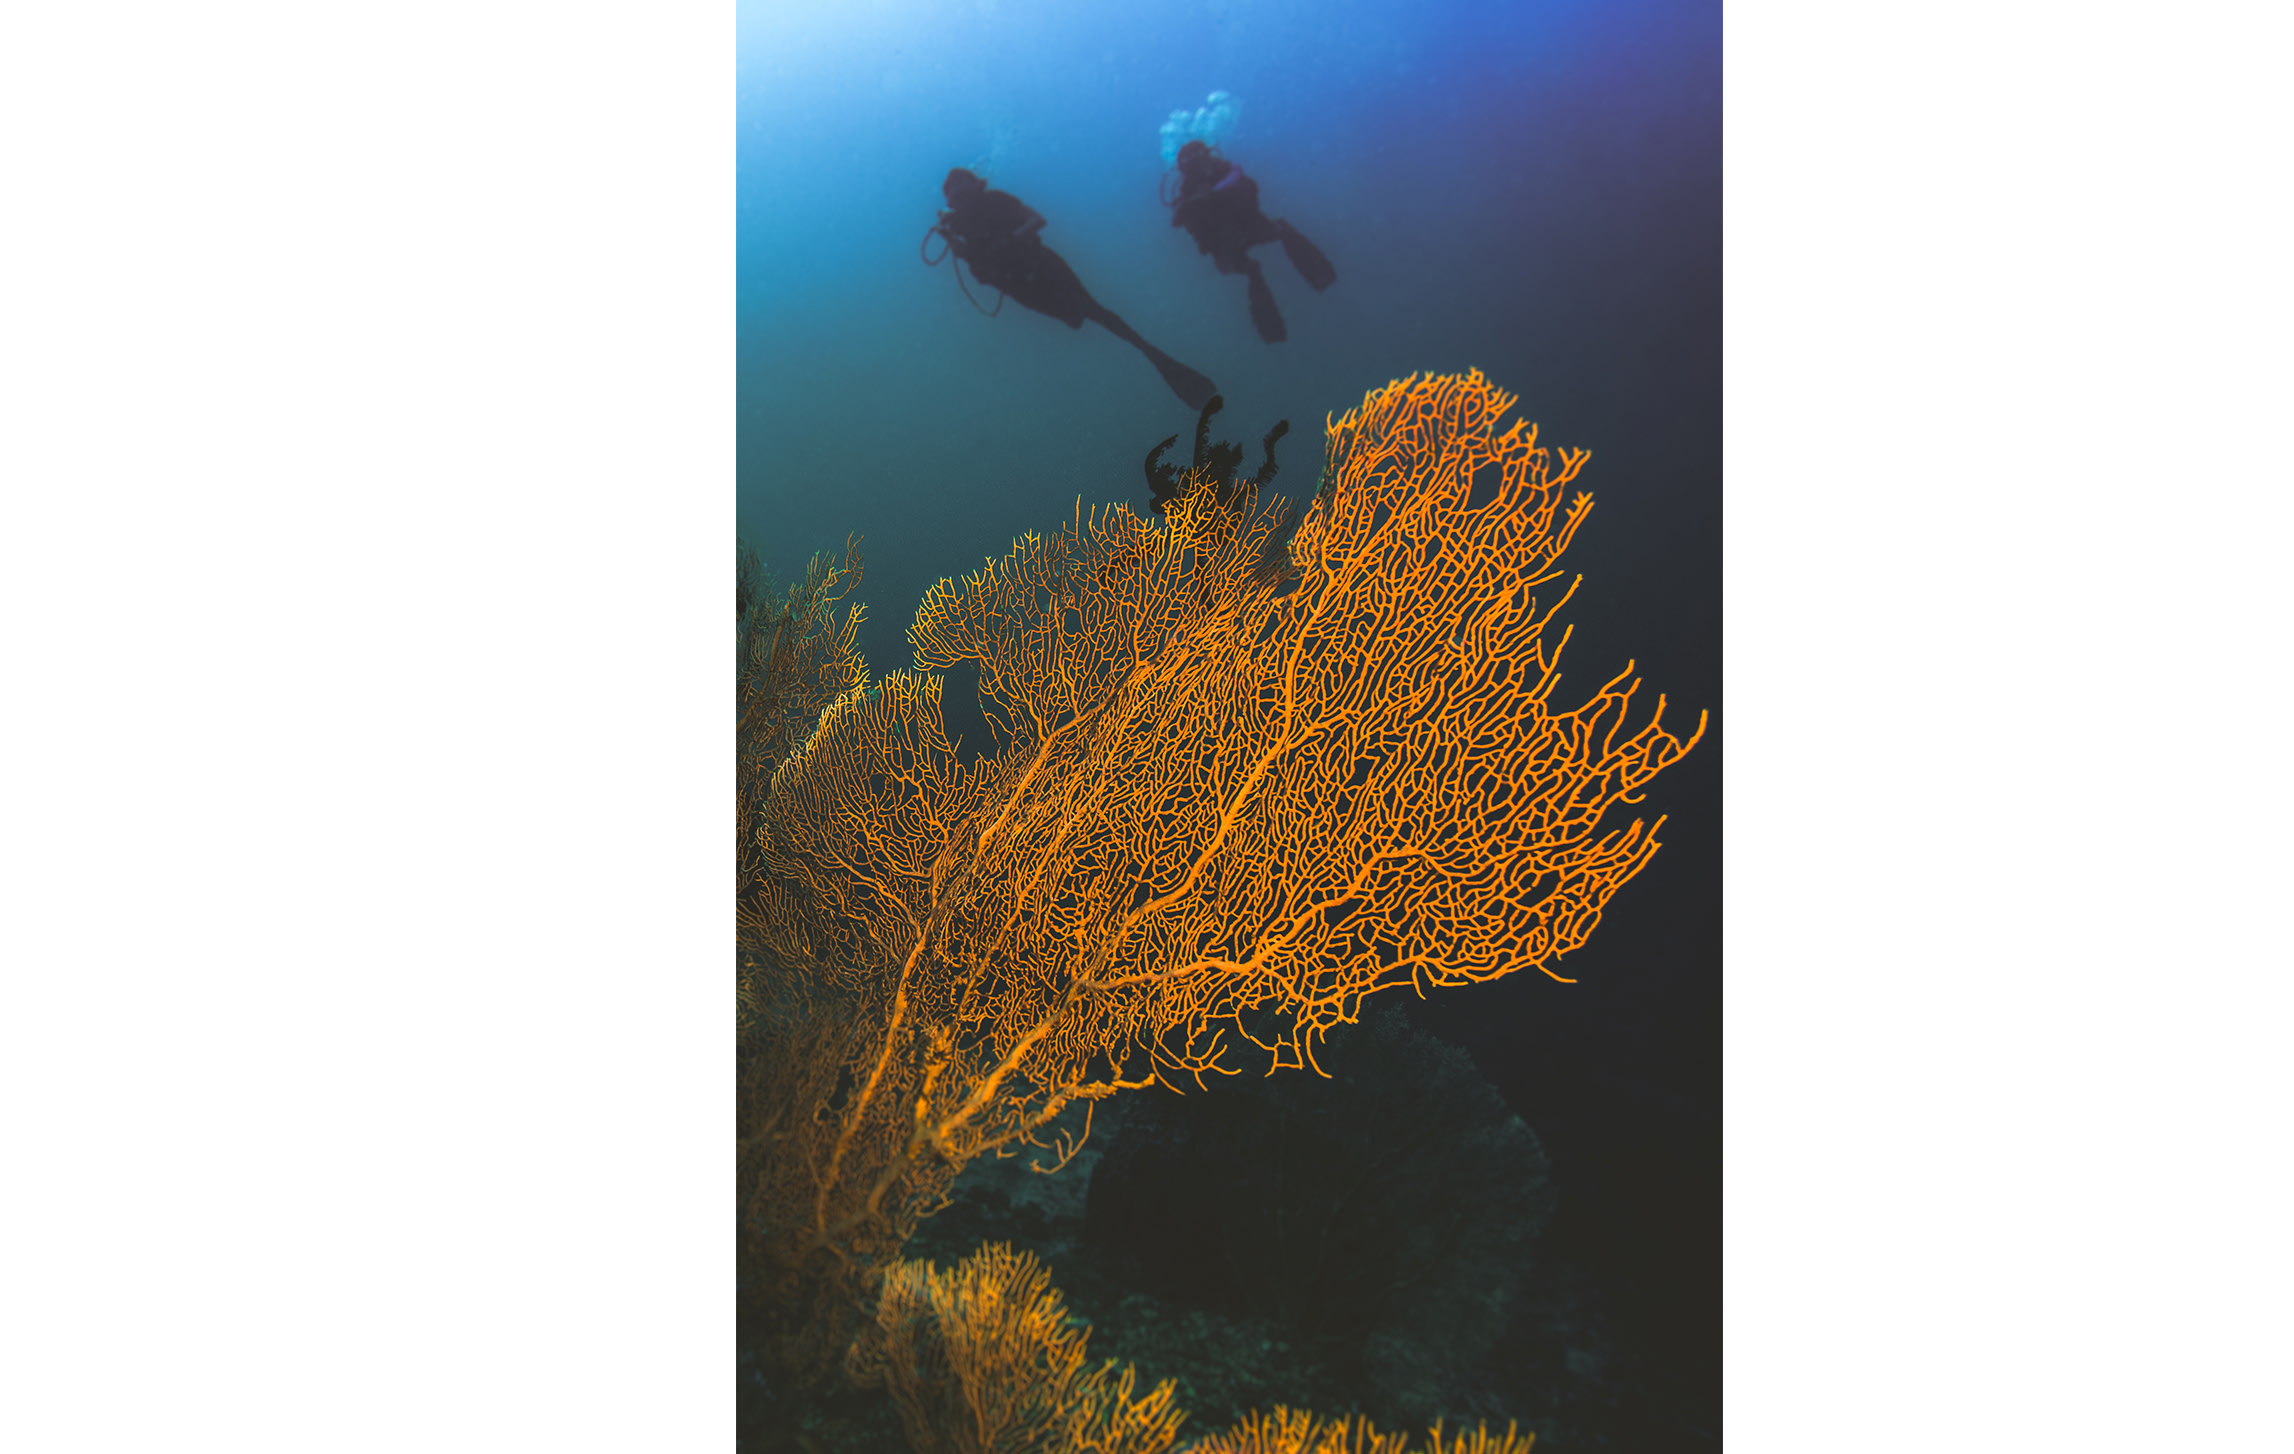 Coral reefs support enormous biodiversity. It is estimated that close to 4,000 different species can live together on a single reef, which represents a hundred times the diversity found in the open ocean.